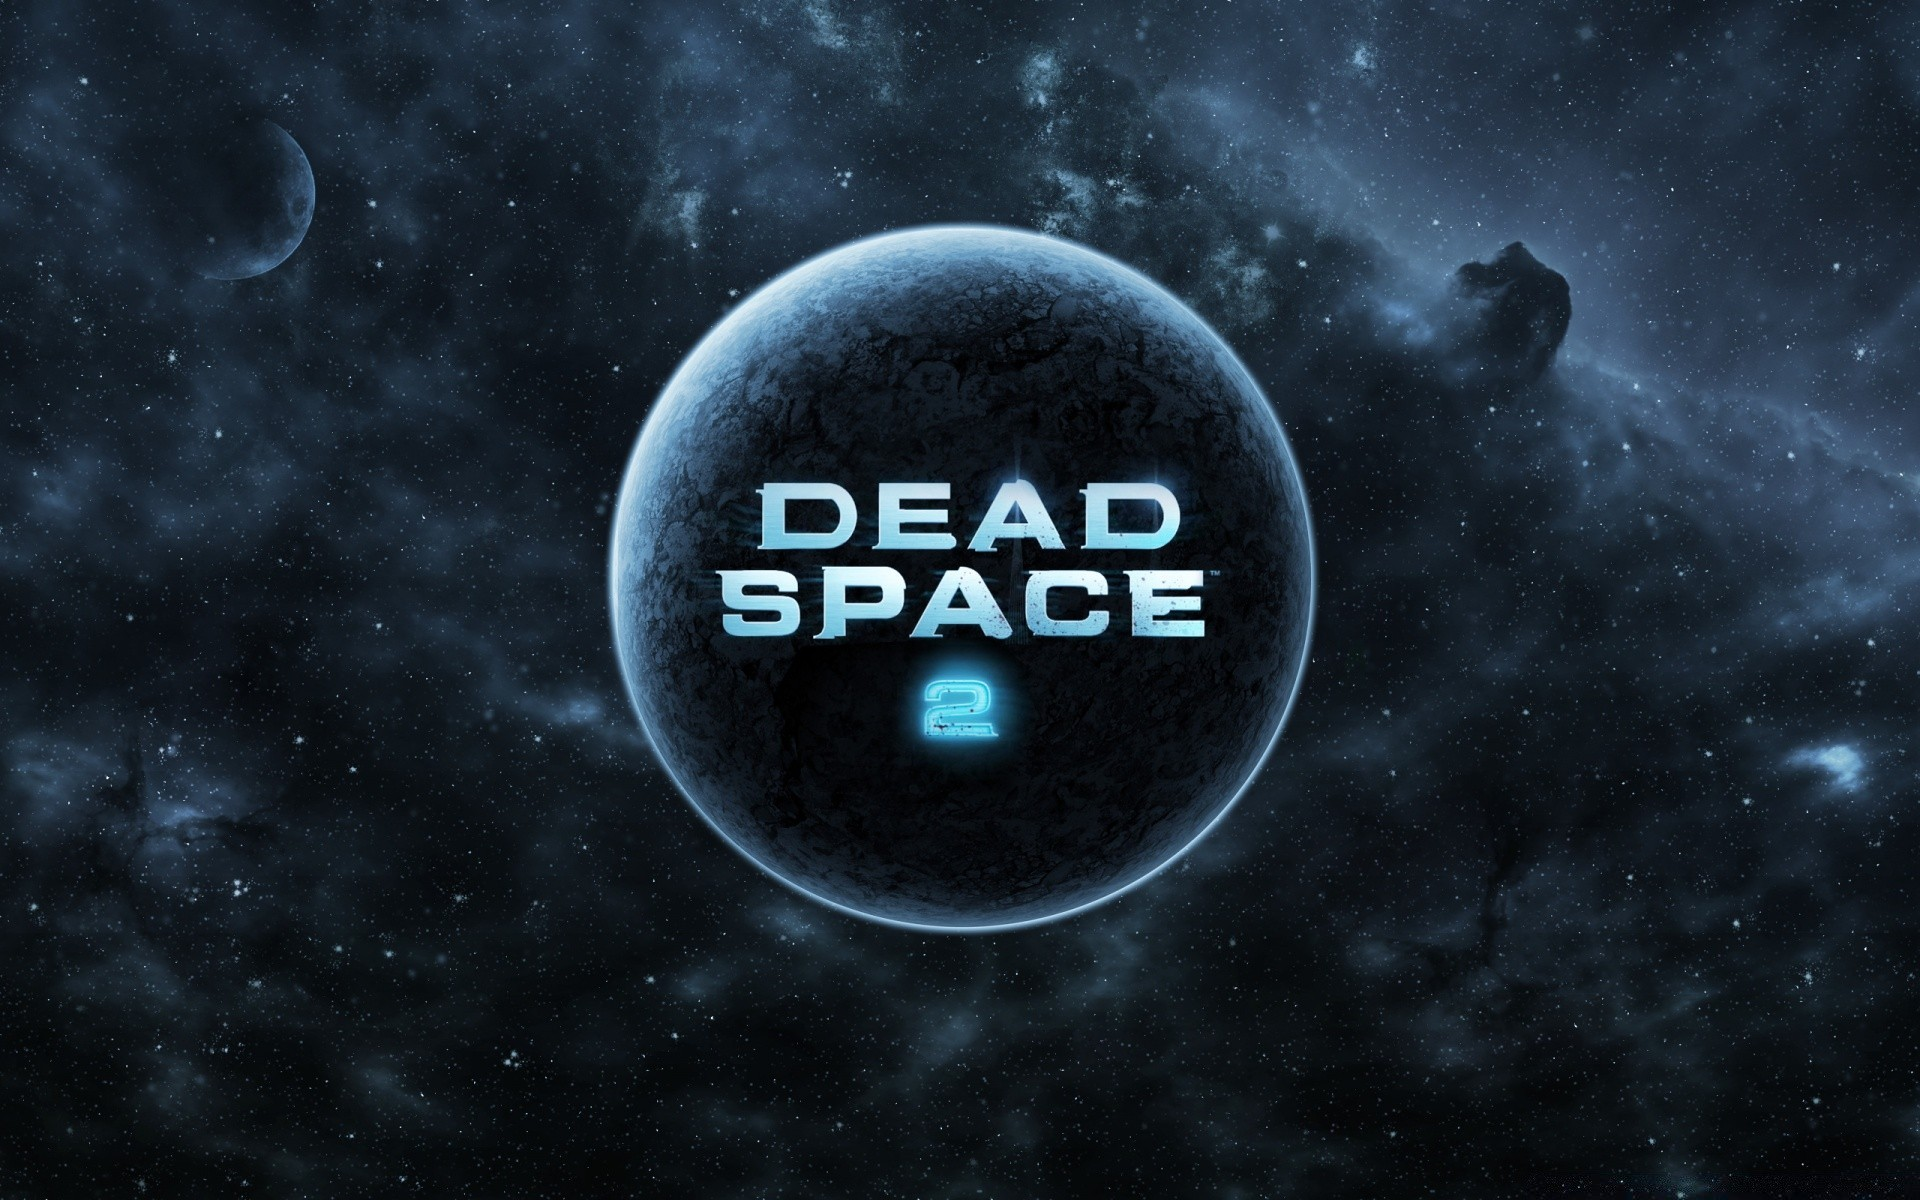 Dead Space 2 Horsehead Nebula Android Wallpapers